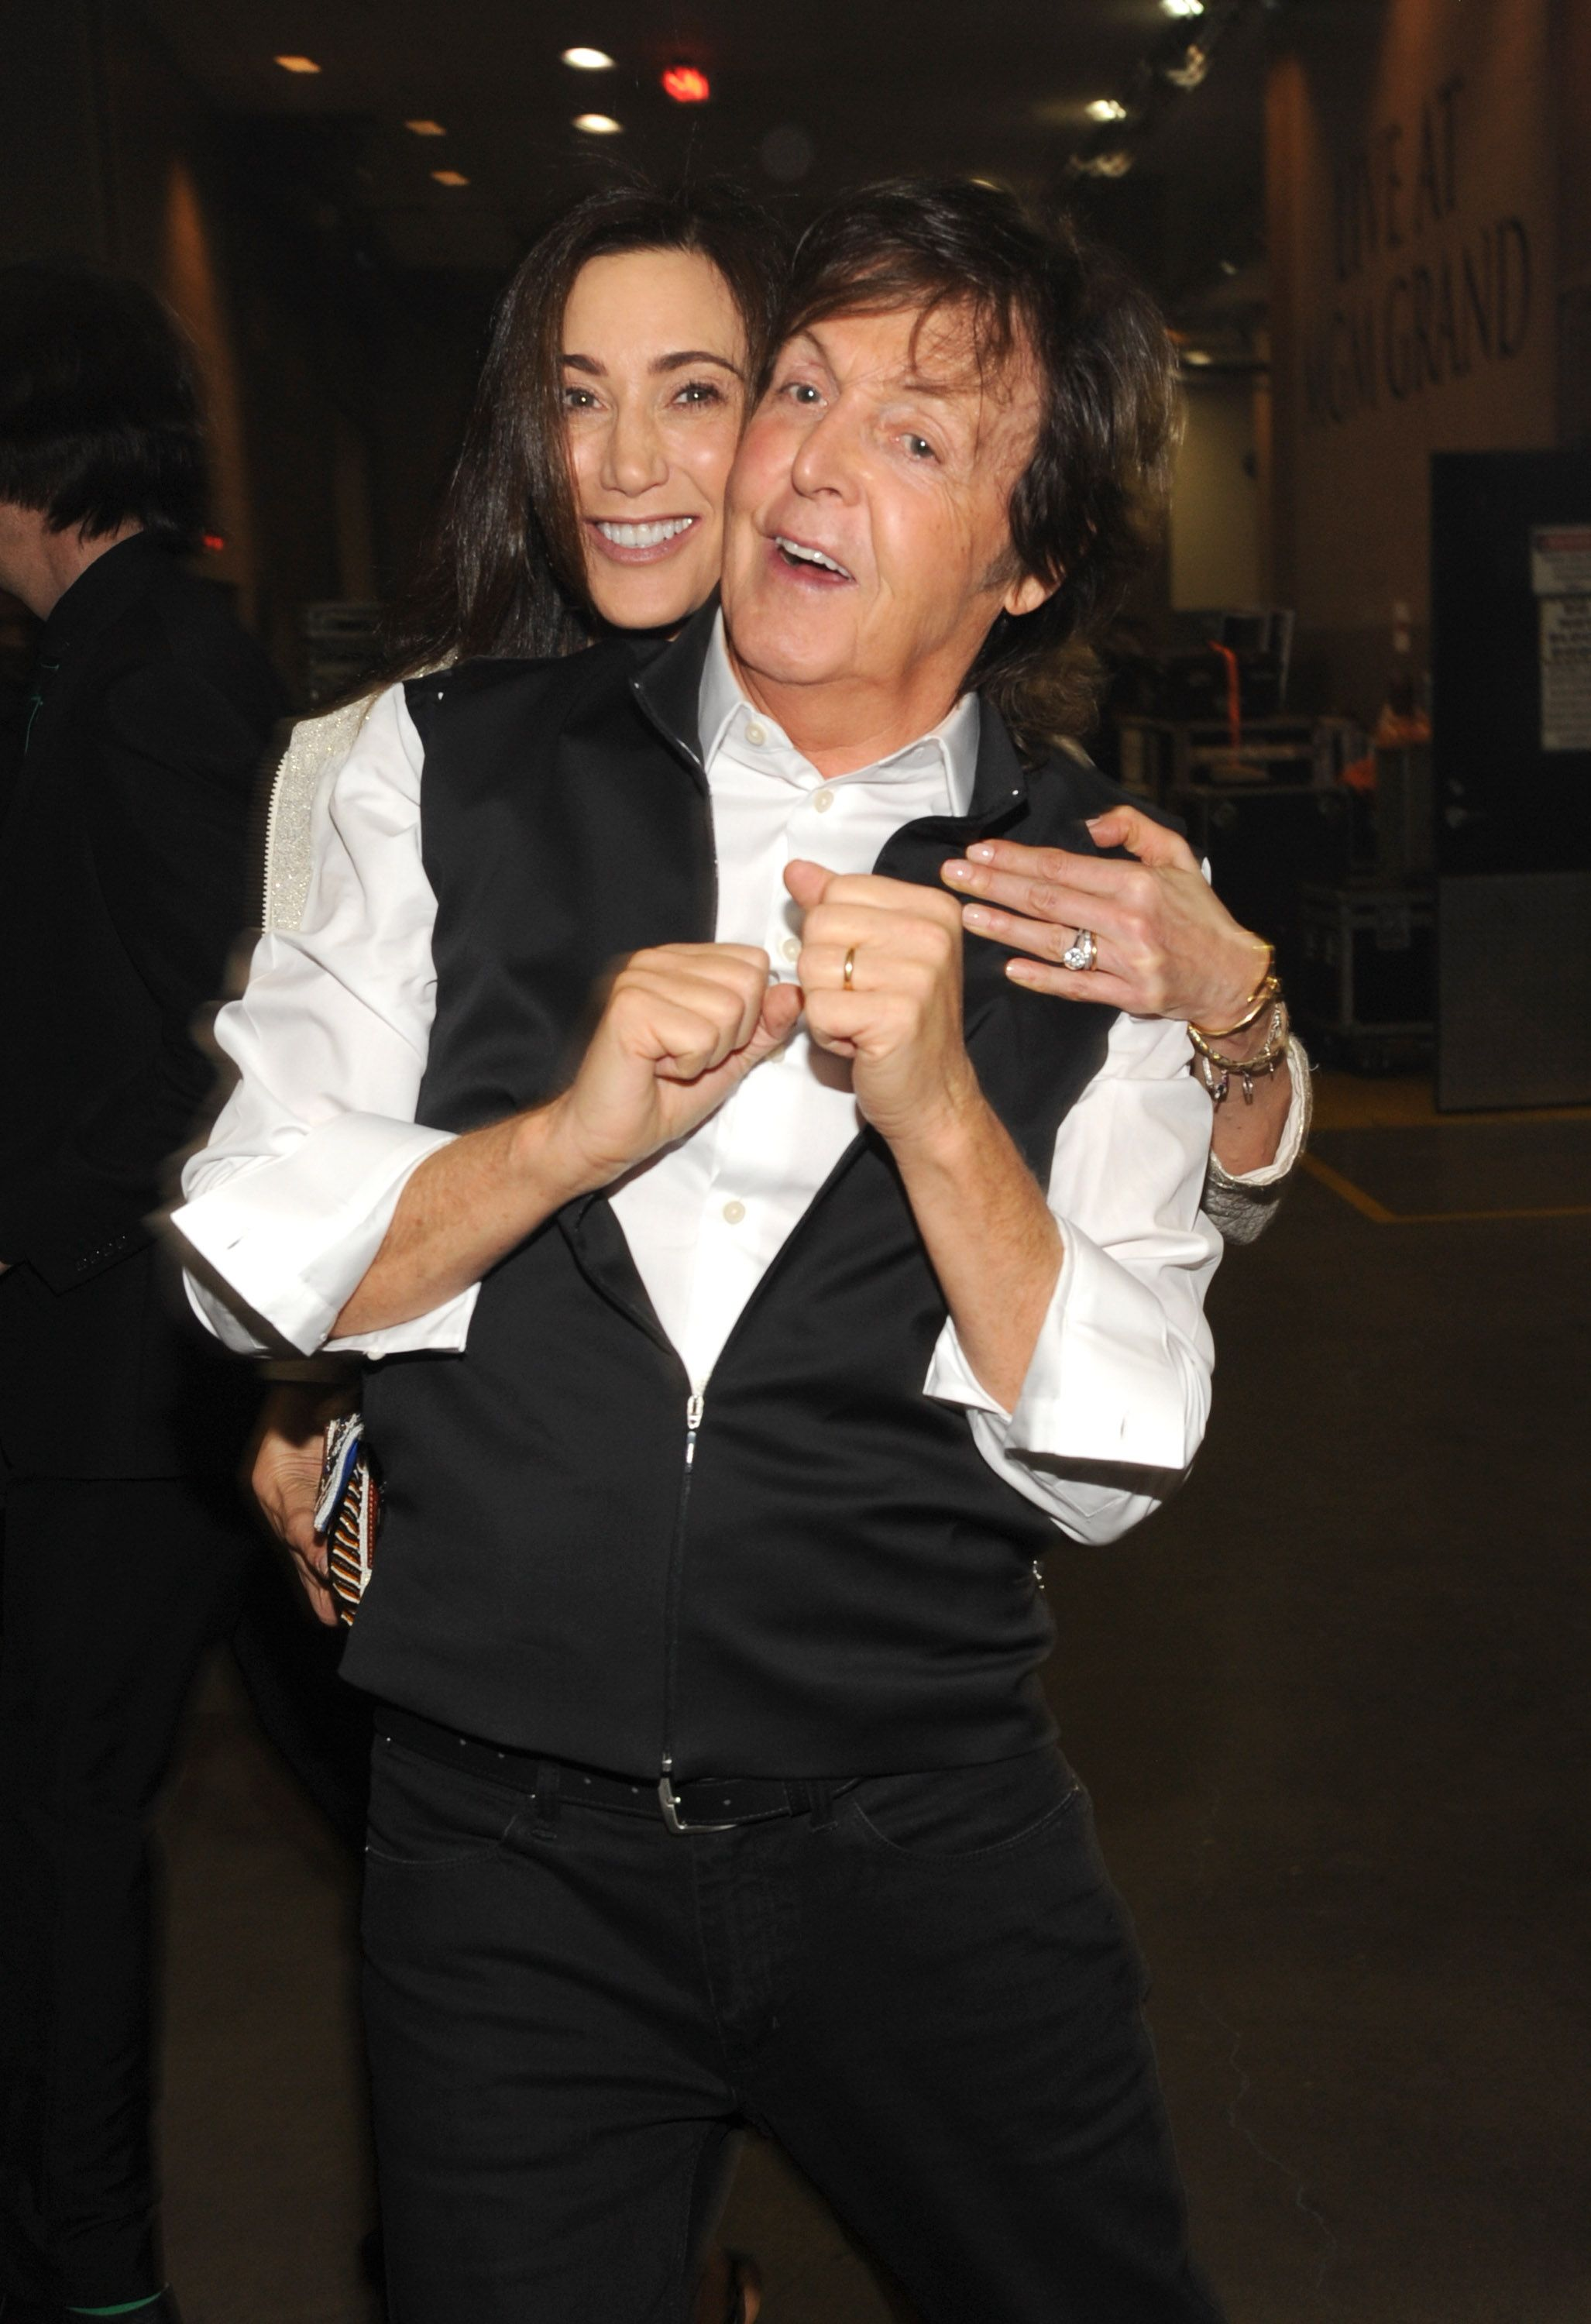 Nancy Shevell and Paul McCartney at the iHeartRadio Music Festival on September 20, 2013, in Las Vegas, Nevada | Photo: Kevin Mazur/Getty Images